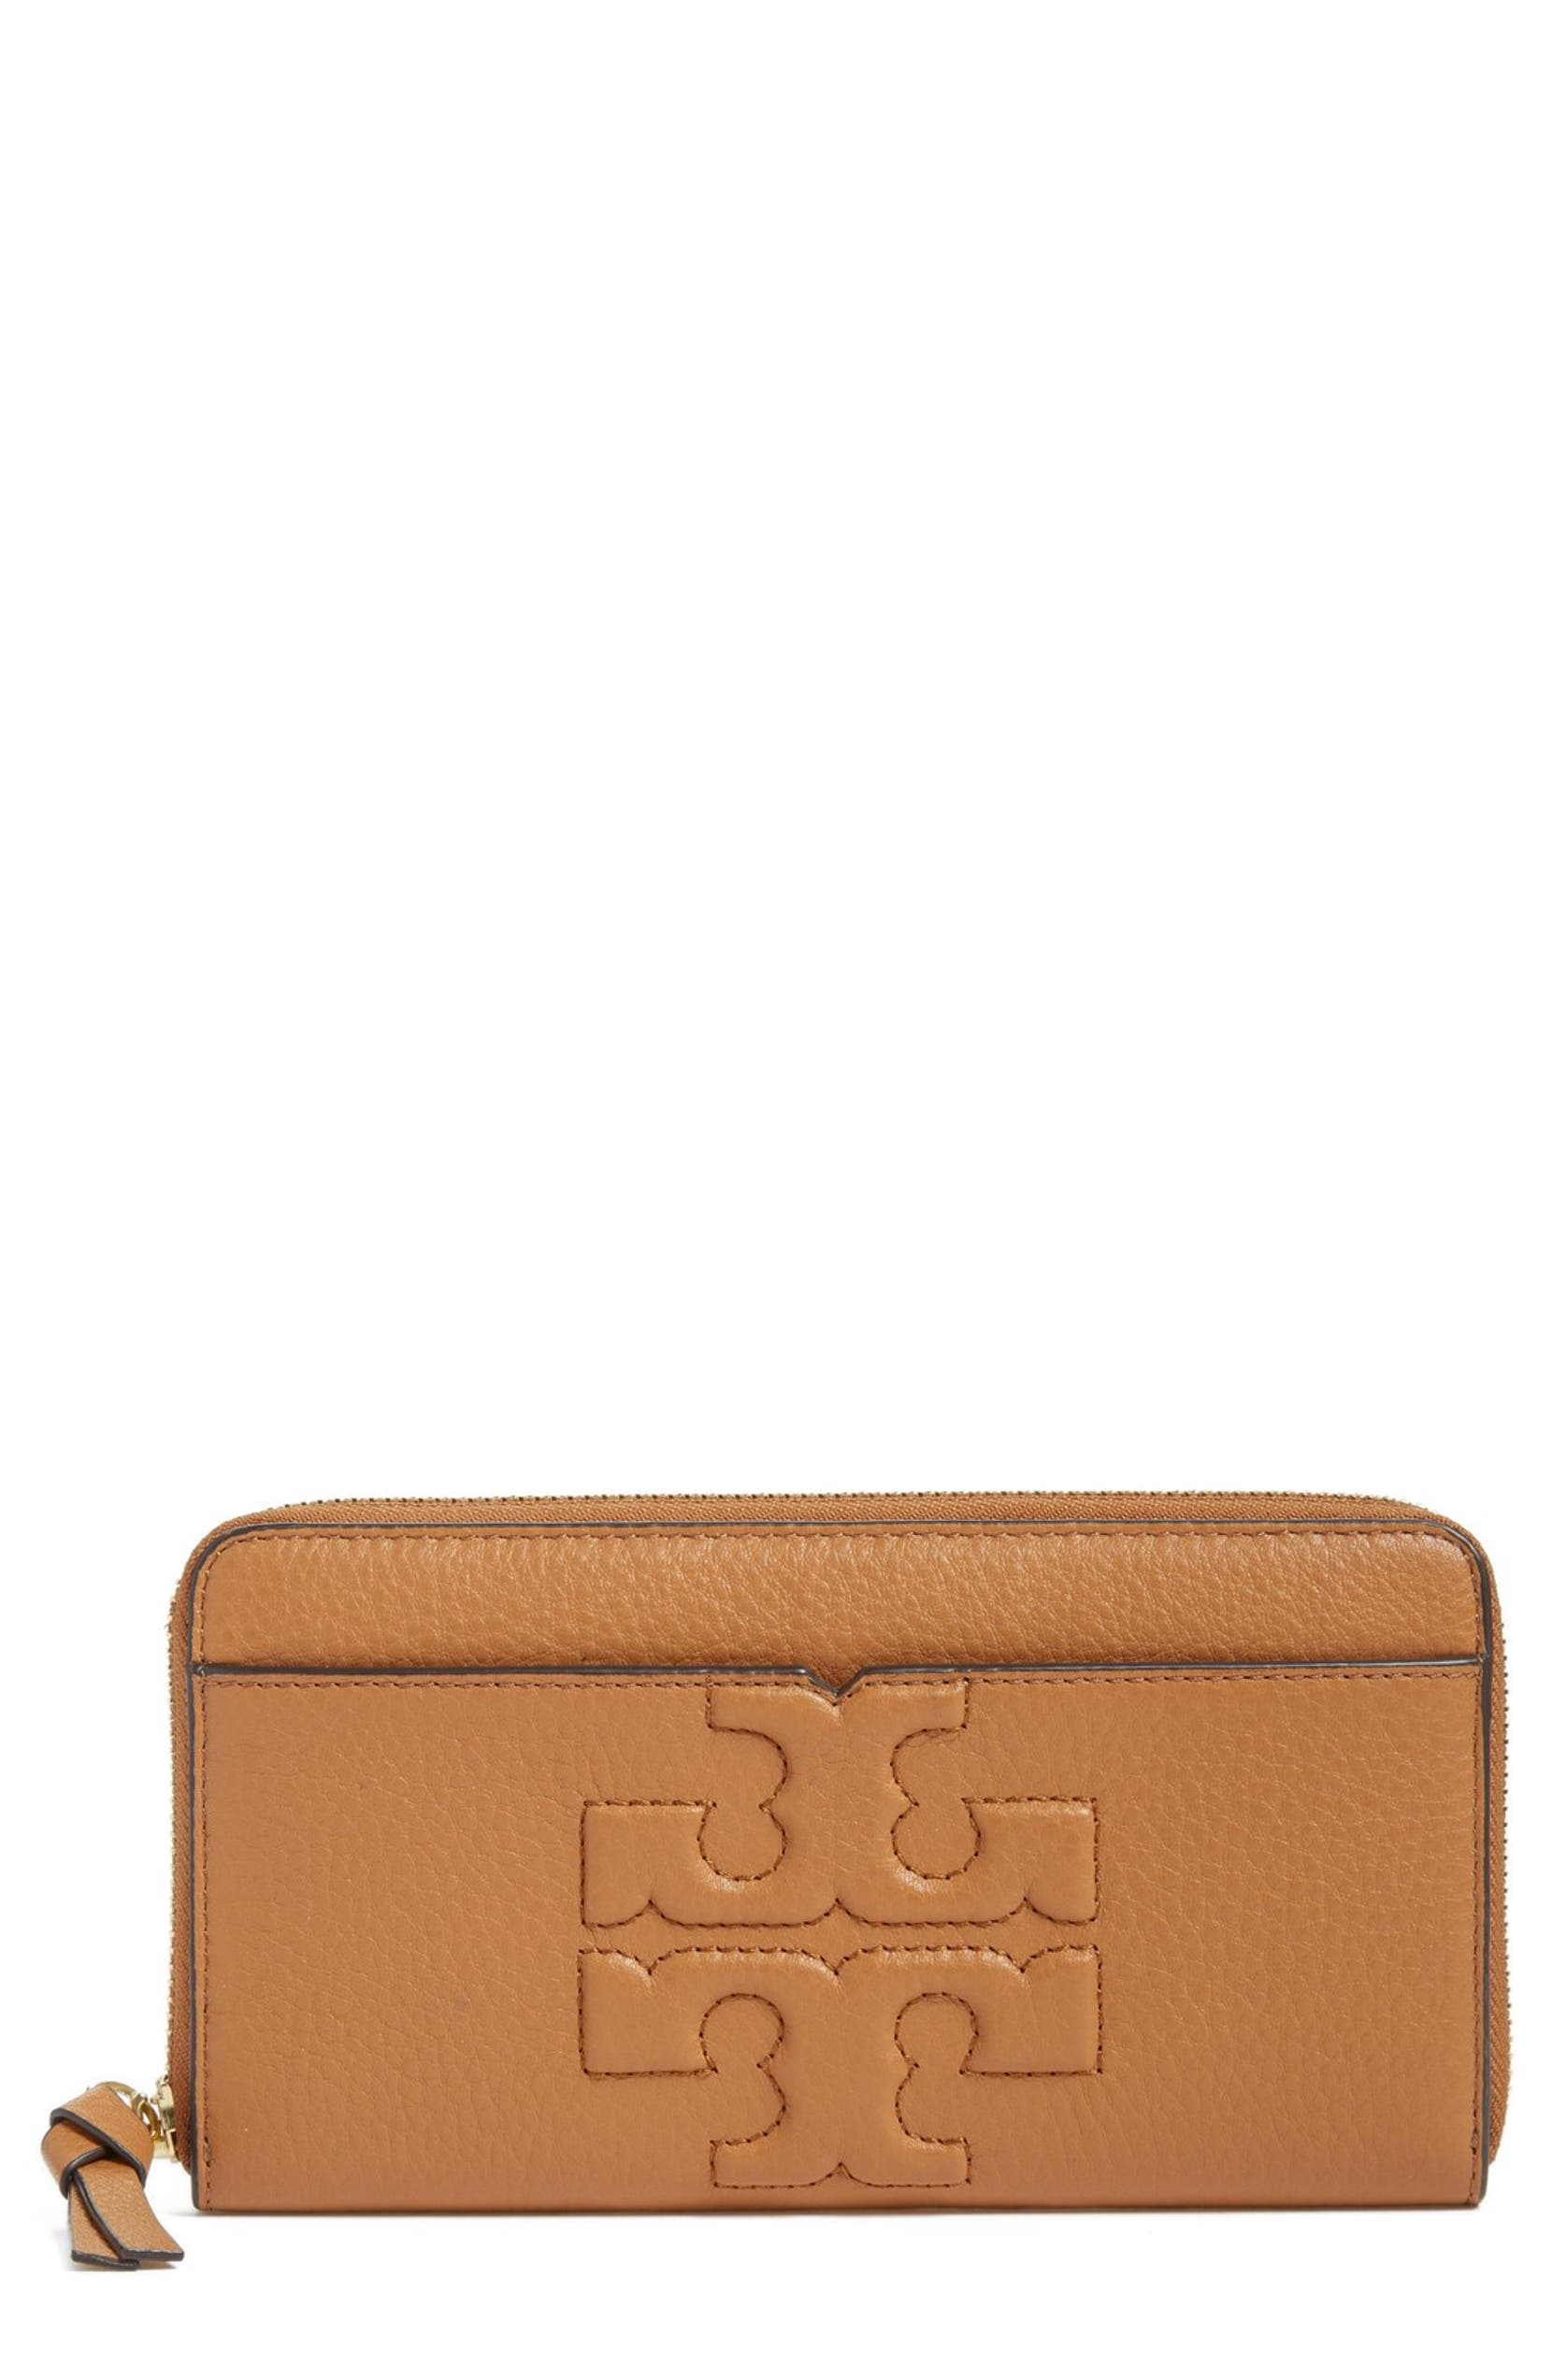 faf9c91ed6 Tory Burch 'Bombe T' Leather Zip Continental Wallet | Nordstrom